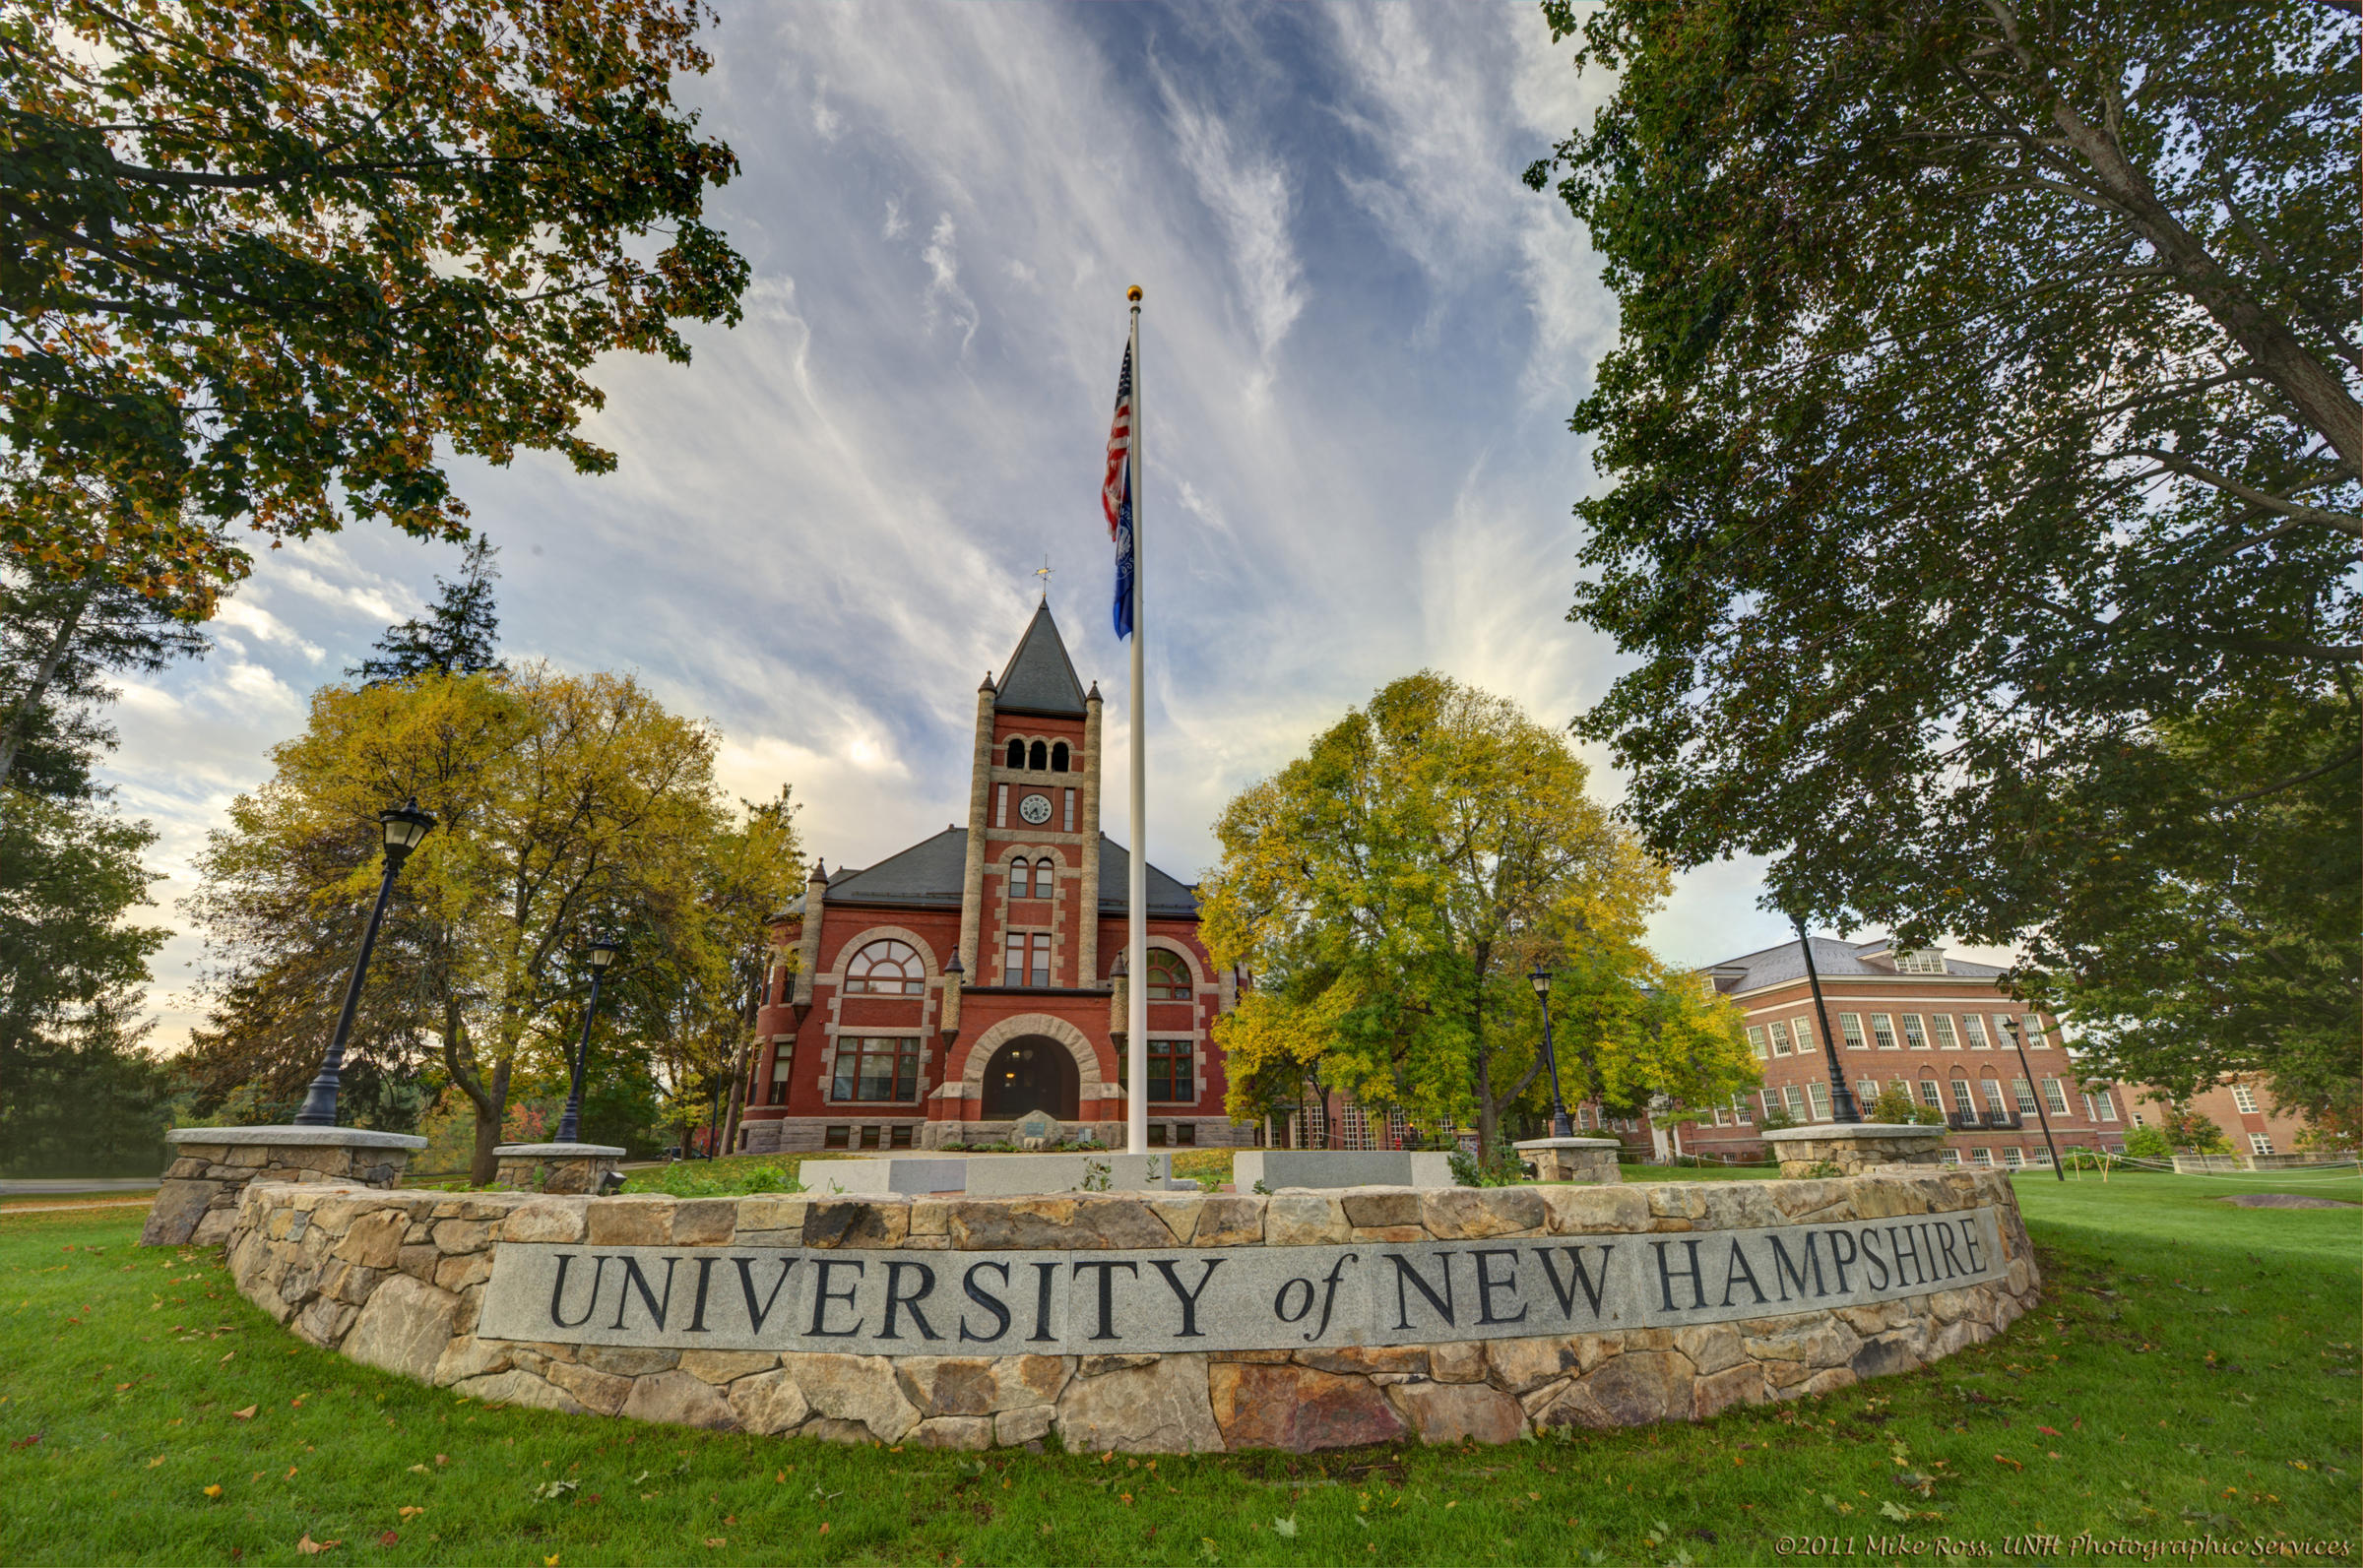 University of New Hampshire campus sign